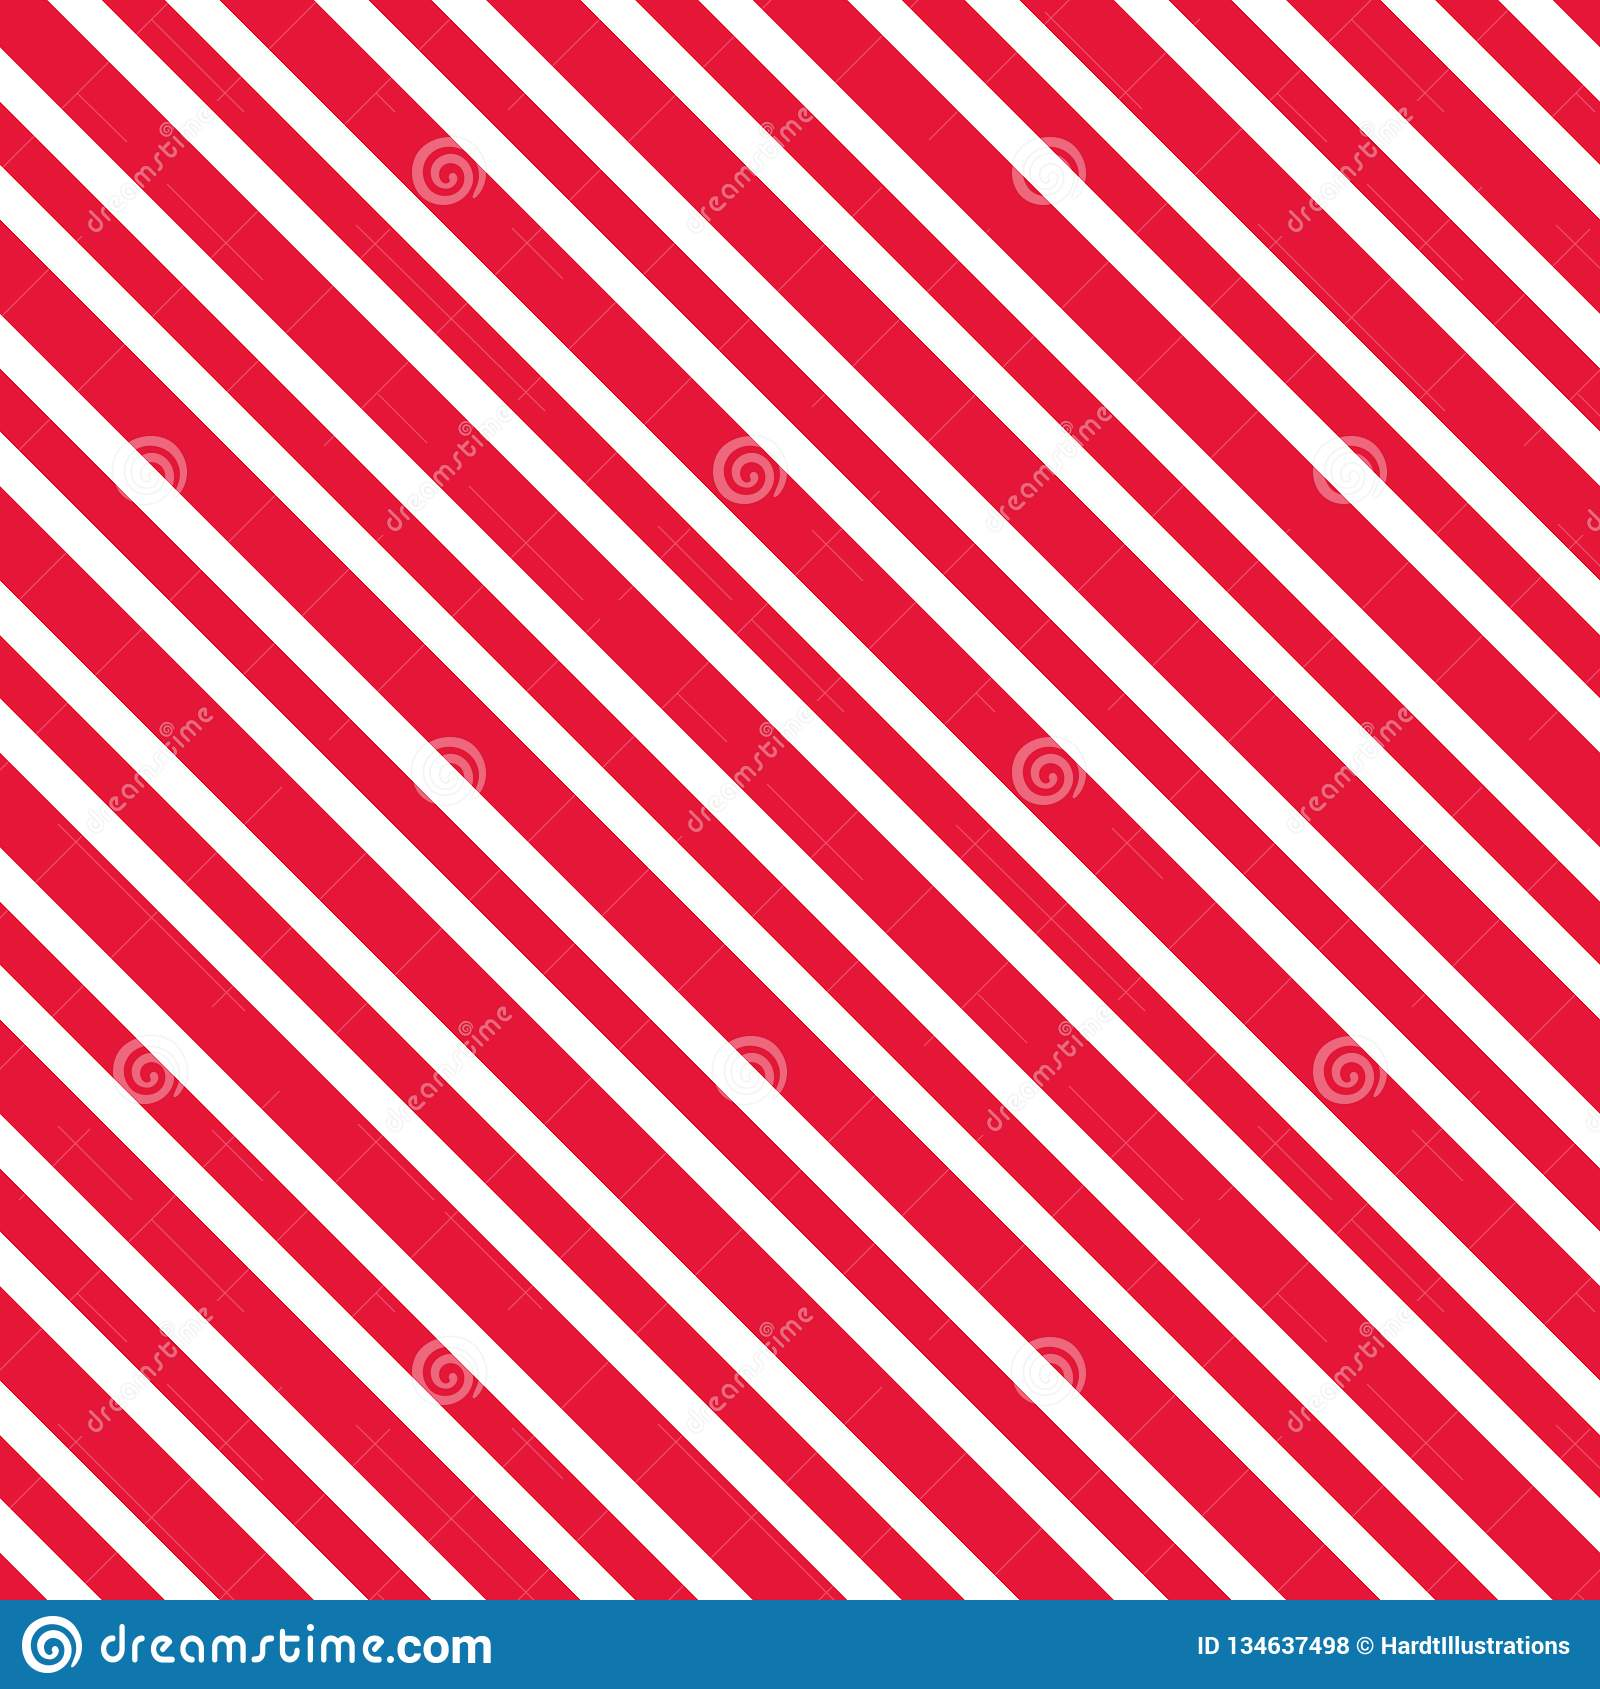 Candy Cane Stripes Seamless Pattern Stock Vector